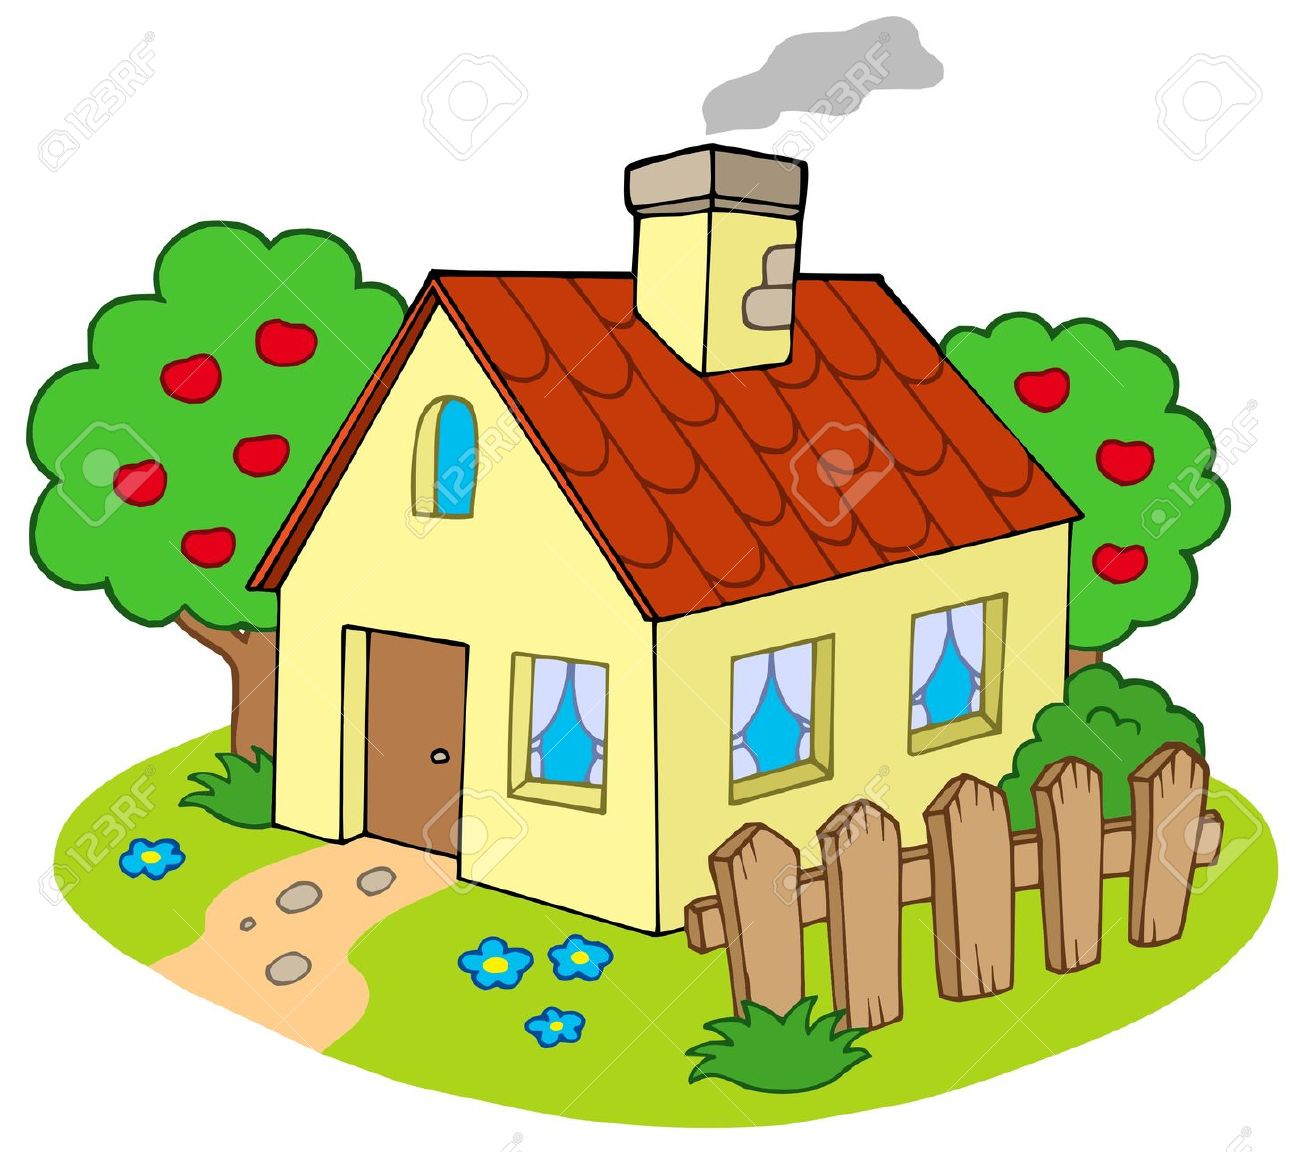 House With Garden.